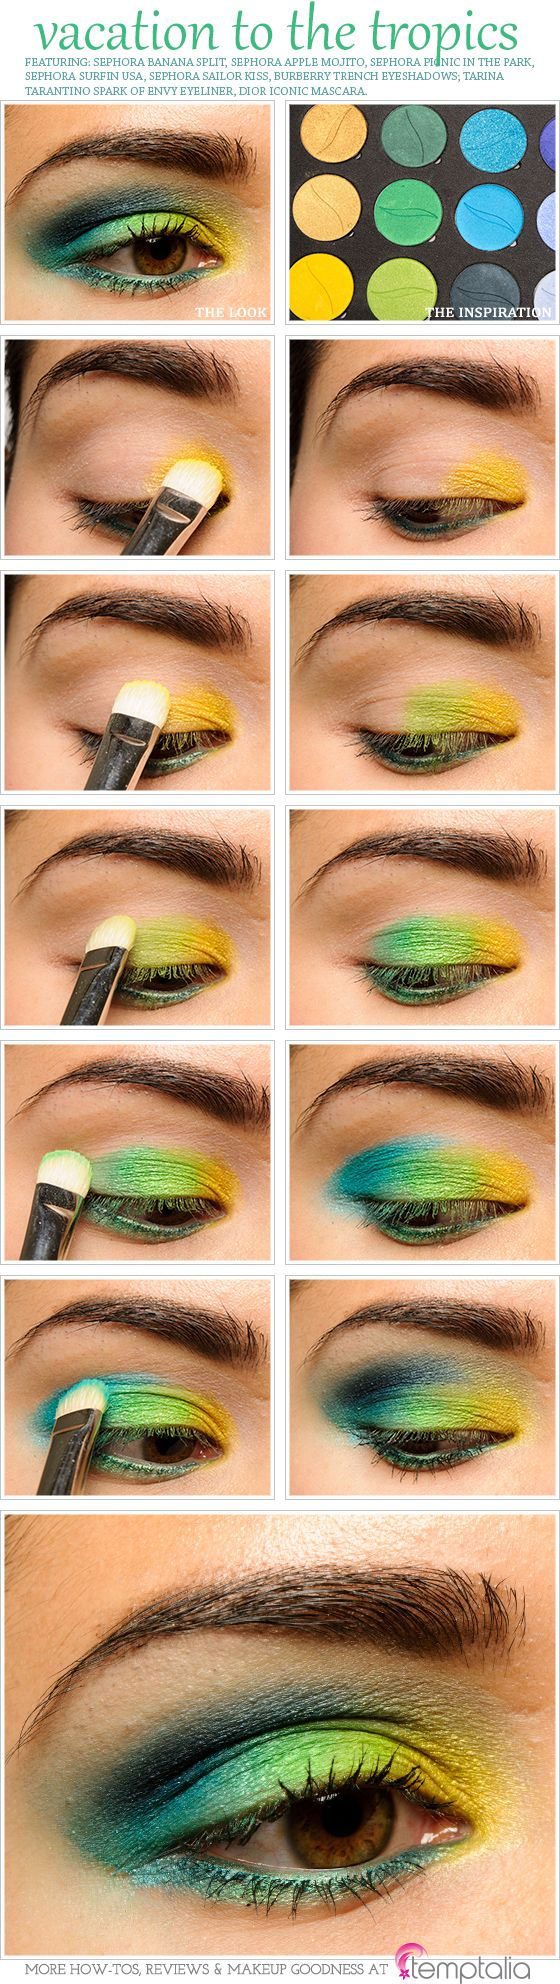 From Yellow to Green eye #makeup #diy